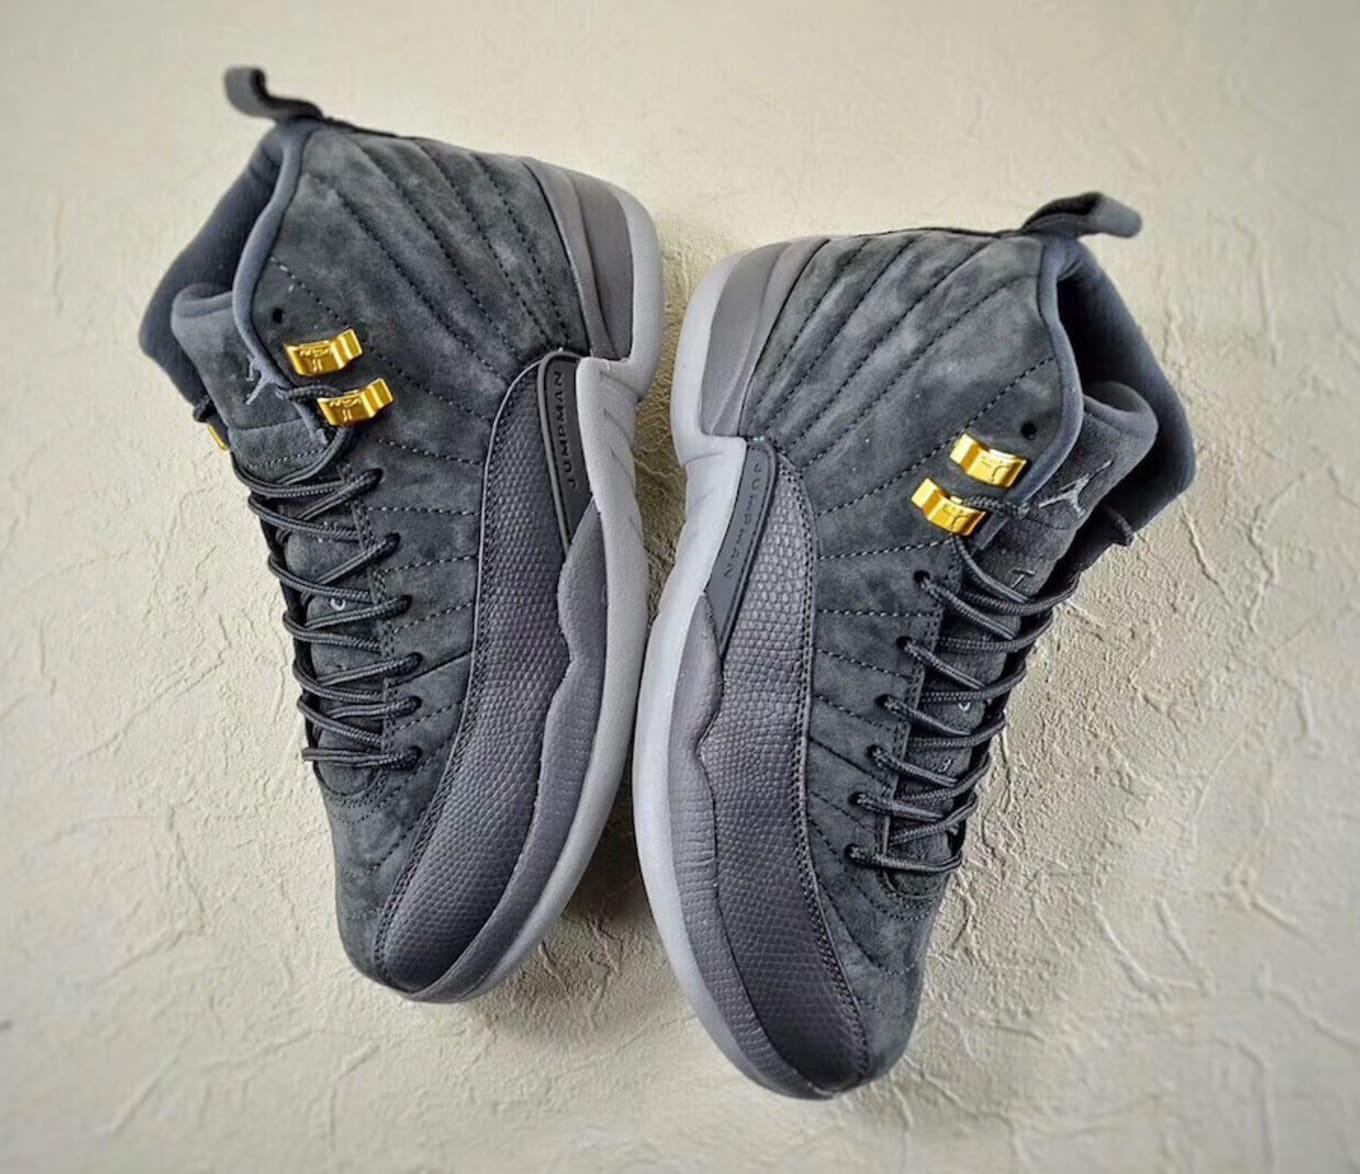 246a2185136 Air Jordan 12 Dark Grey 2017 Release Date 130690-005 | Sole Collector